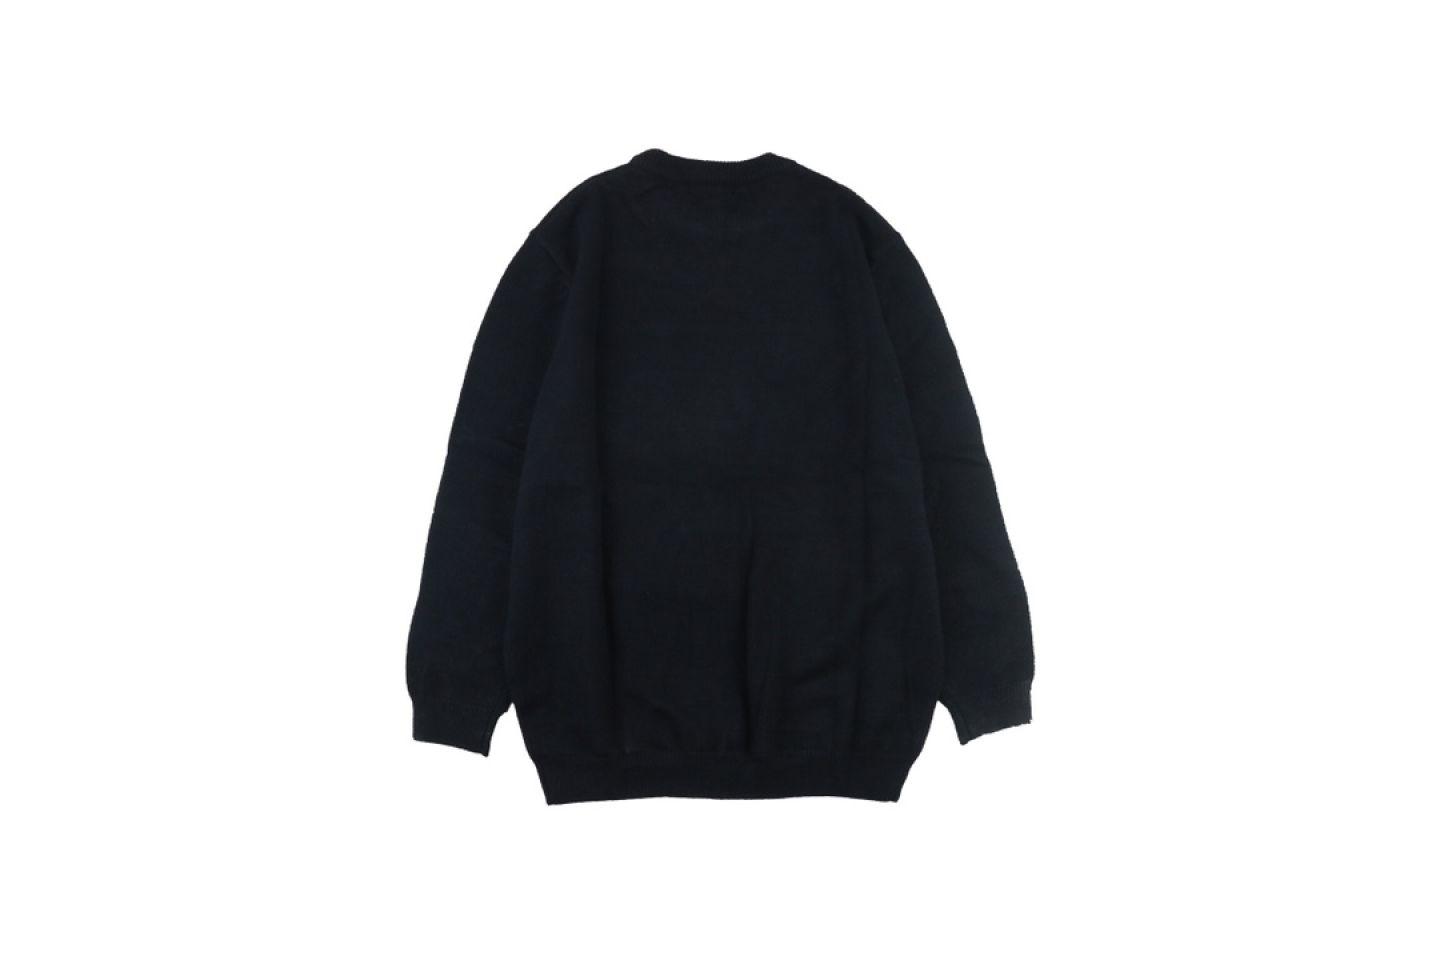 Shirt Loewe large logo jacquard crew neck sweater 5 loewe_large_logo_jacquard_crew_neck_sweater_5